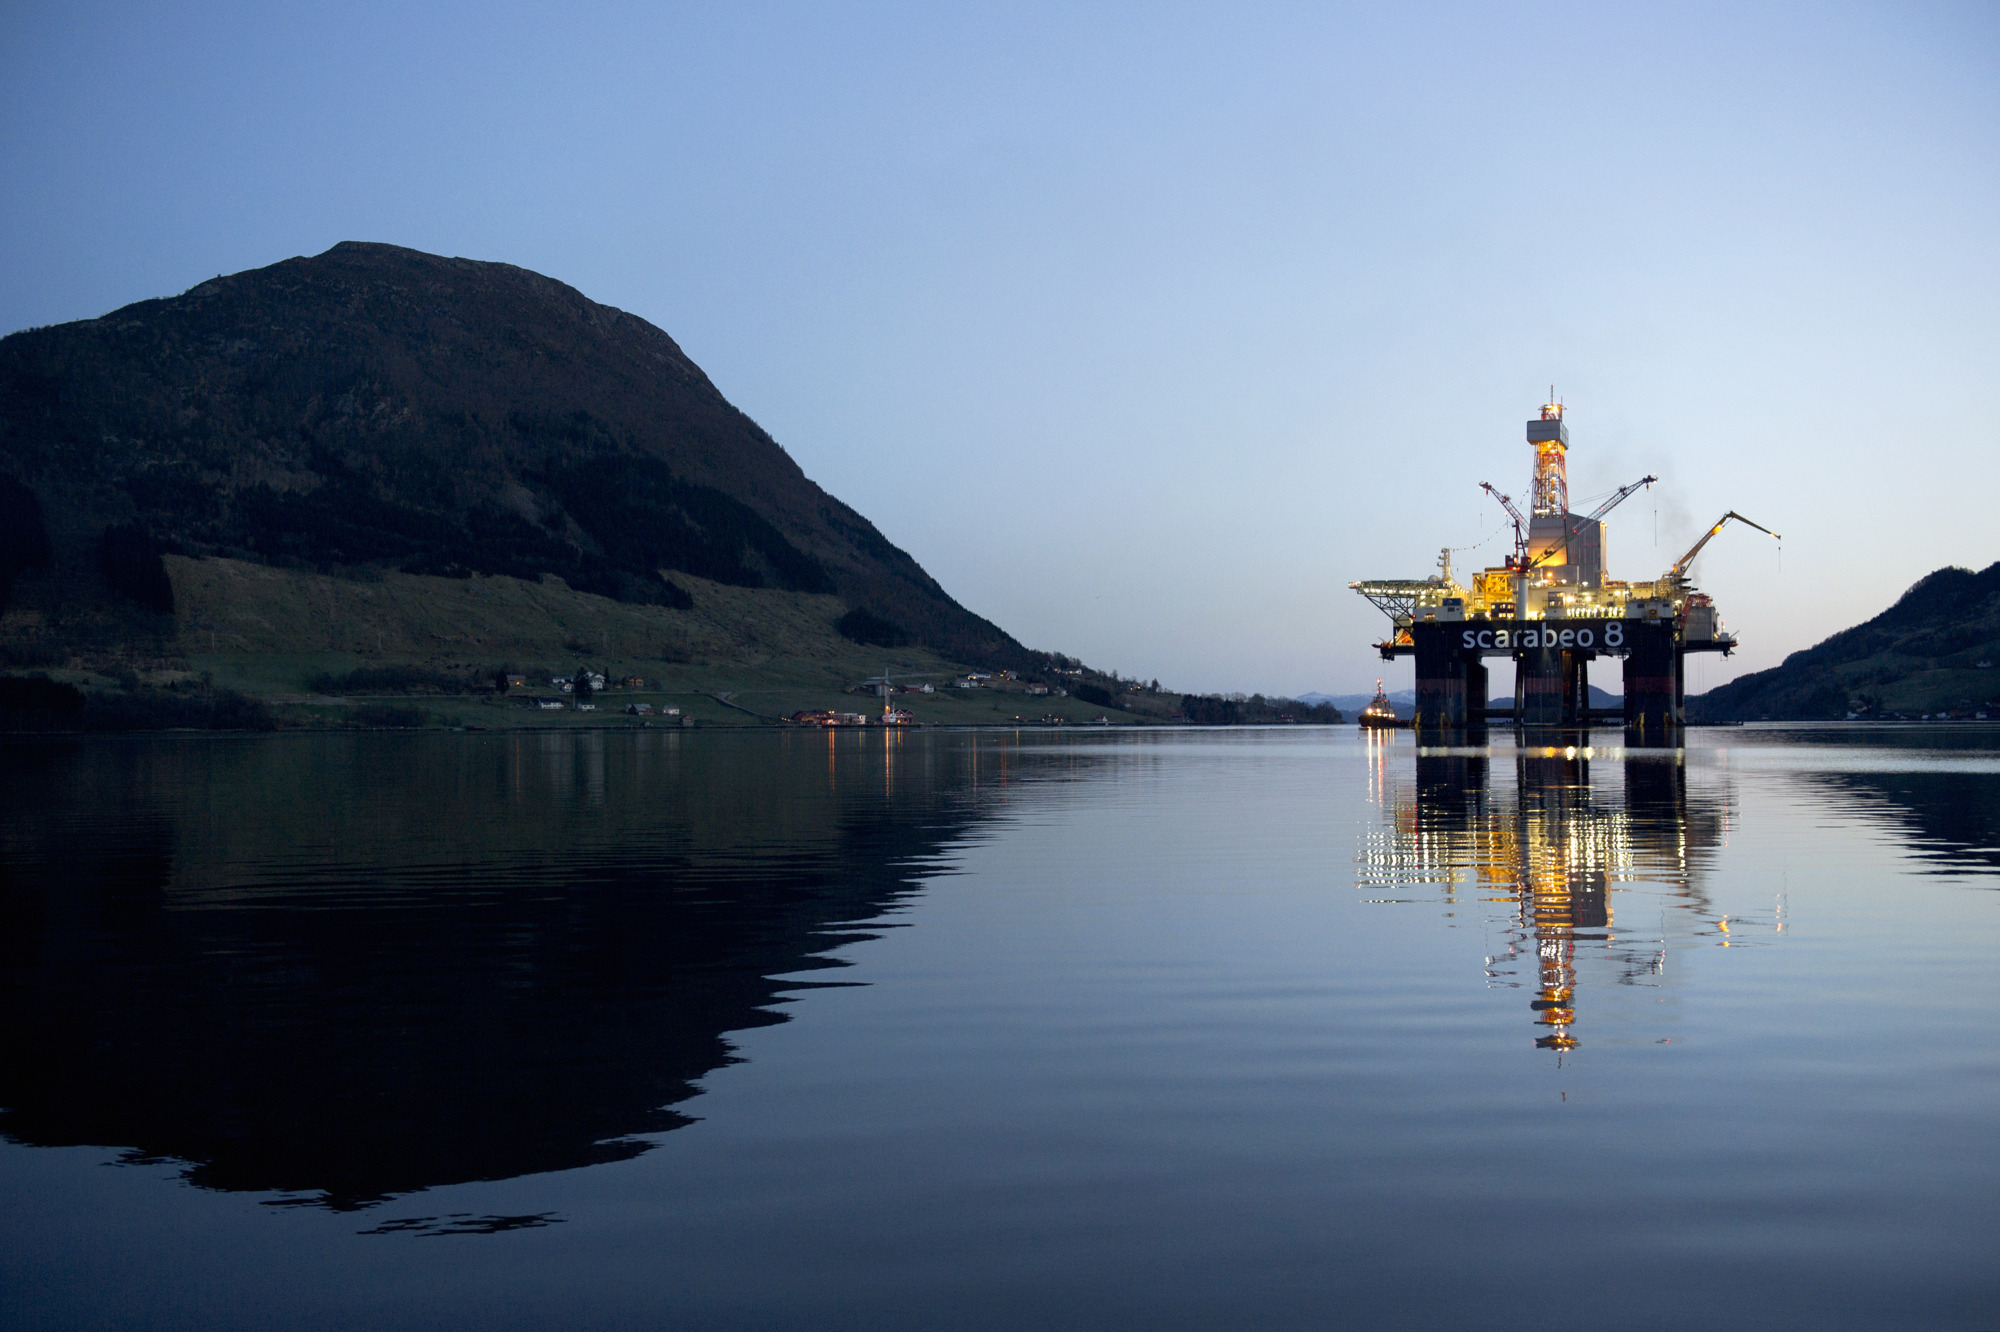 The Scarabeo 8 deepwater oil drilling rig, operated by ENI Norge AS, stands illuminated at night after being re-fitted at the Westcon AS yard in Olensvag, Norway, on Tuesday, April 3, 2012.  Photographer: Kristian Helgesen/Bloomberg